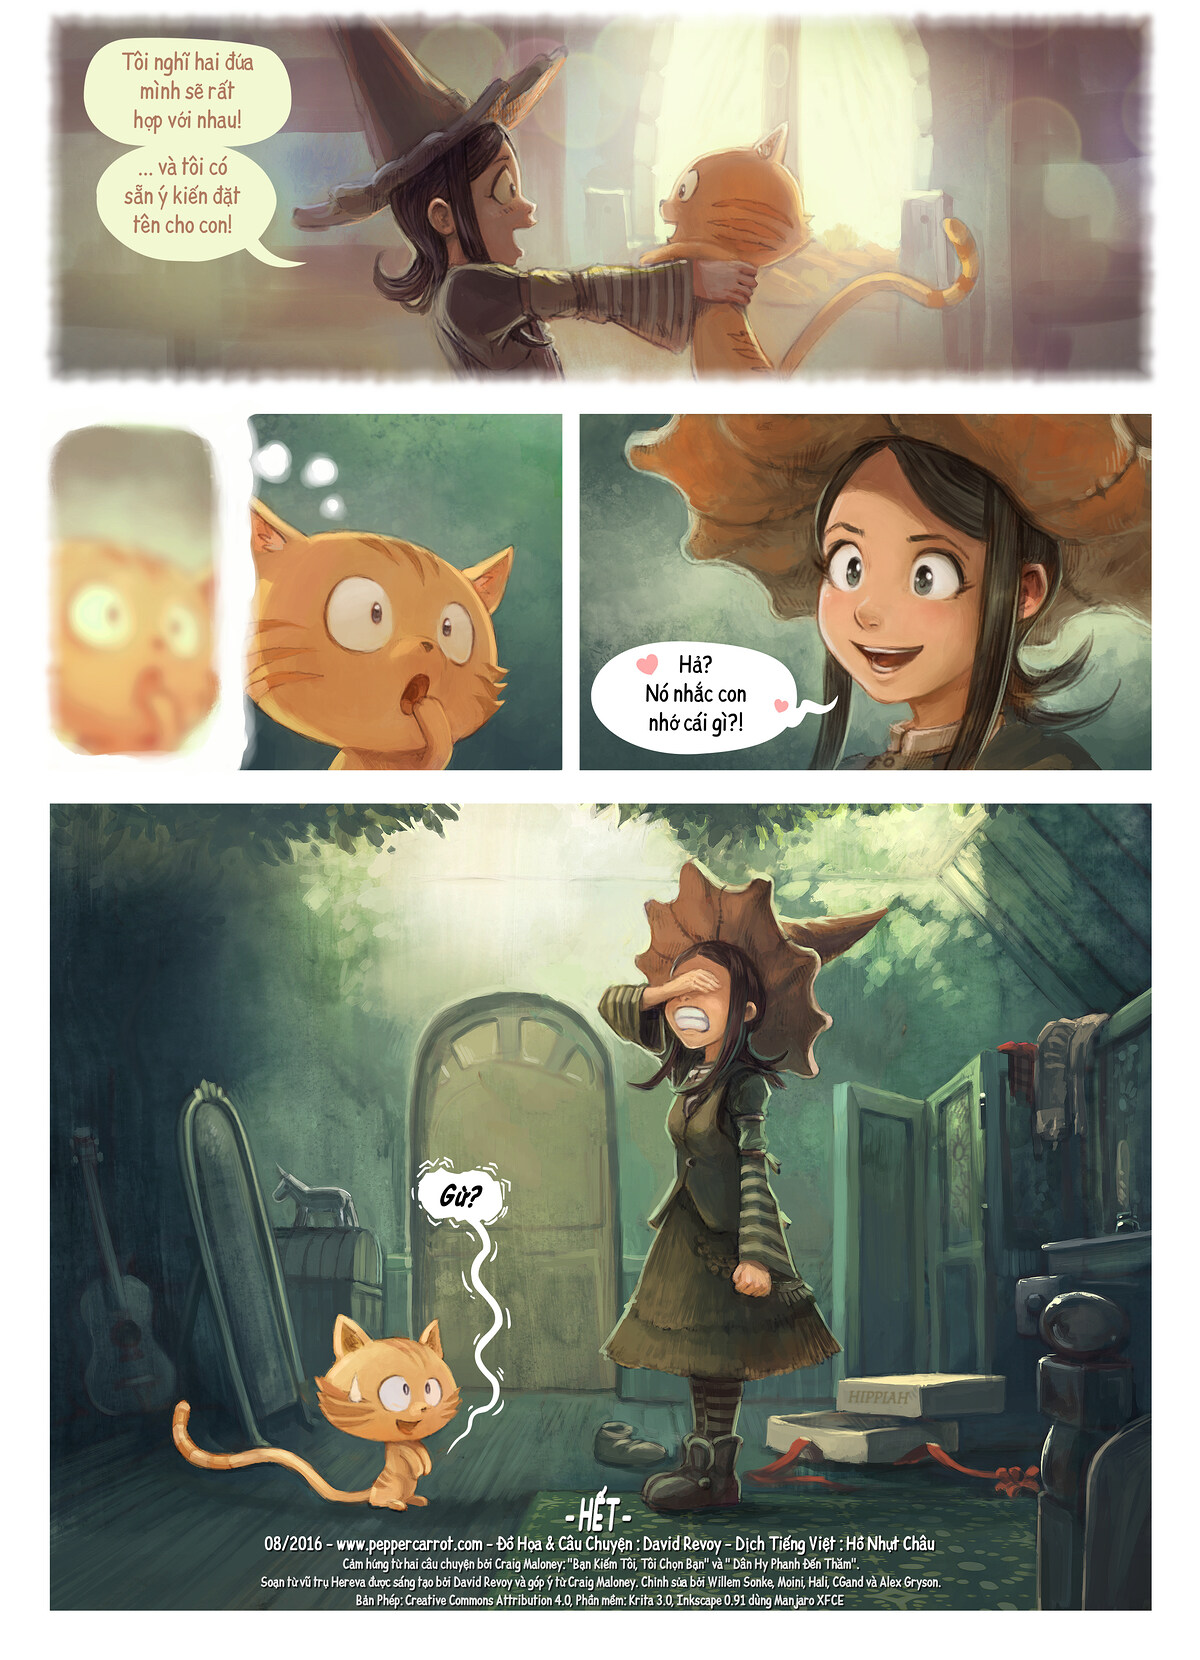 A webcomic page of Pepper&Carrot, Tập 18 [vi], trang 7